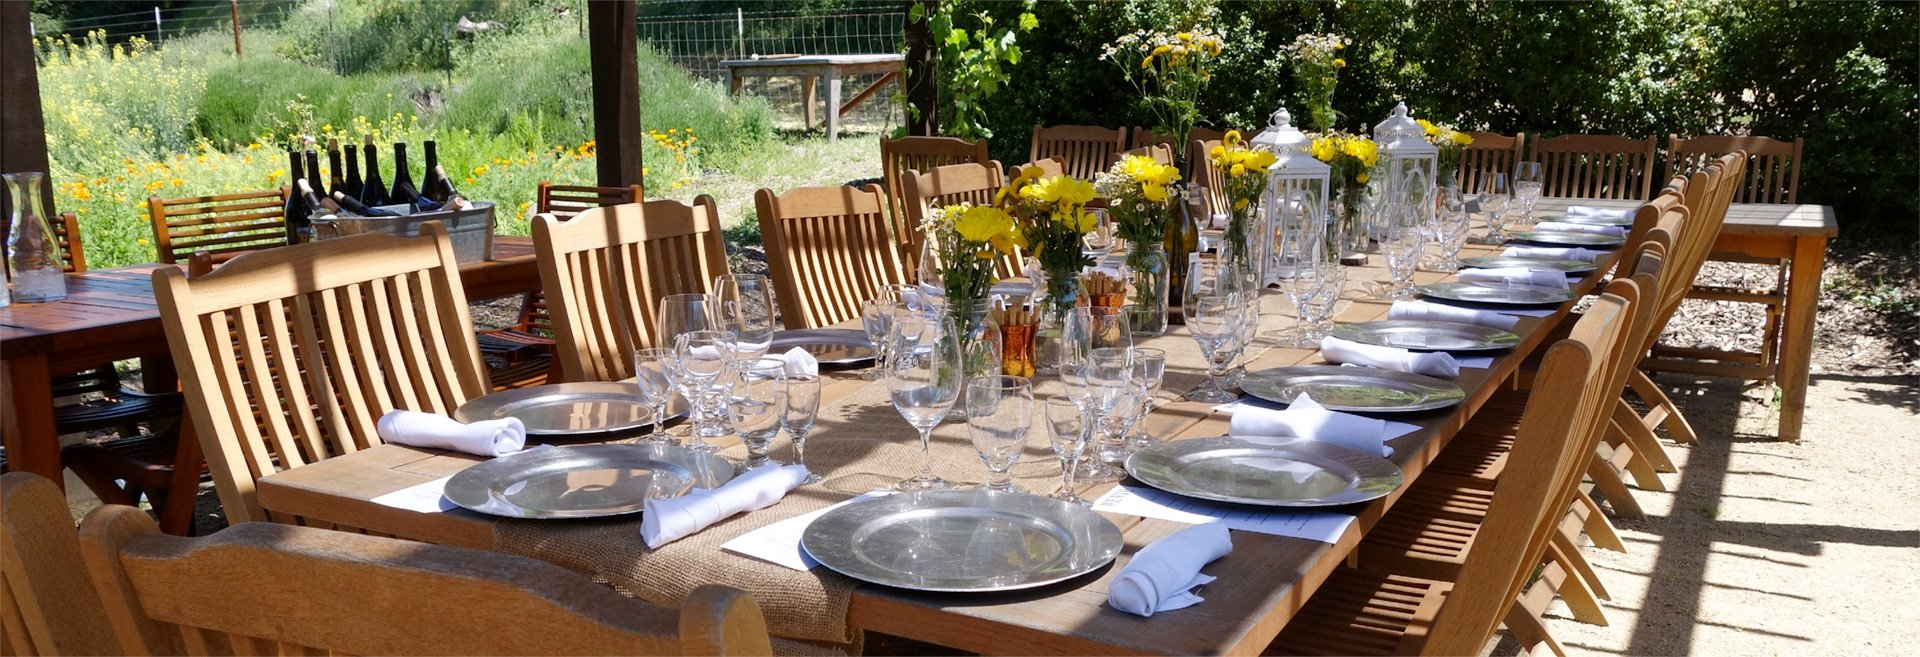 Food and wine pairing at Wente Vineyards in Livermore Valley Wine Country